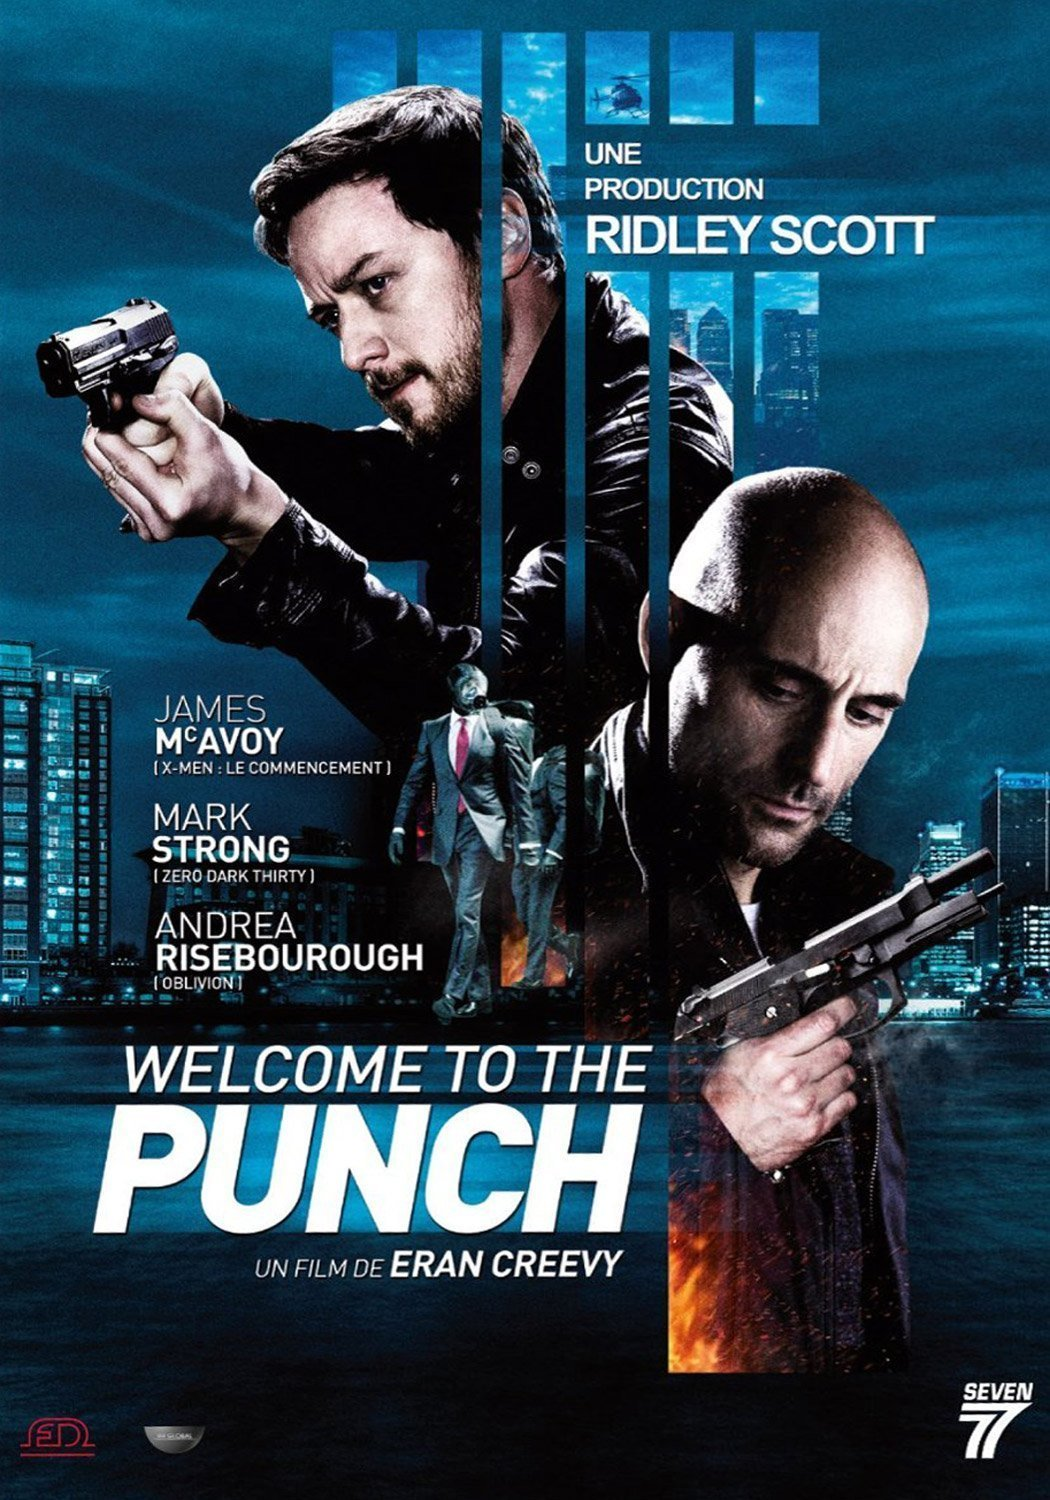 Affiche française du film Welcome to the Punch avec James McAvoy et Mark Strong